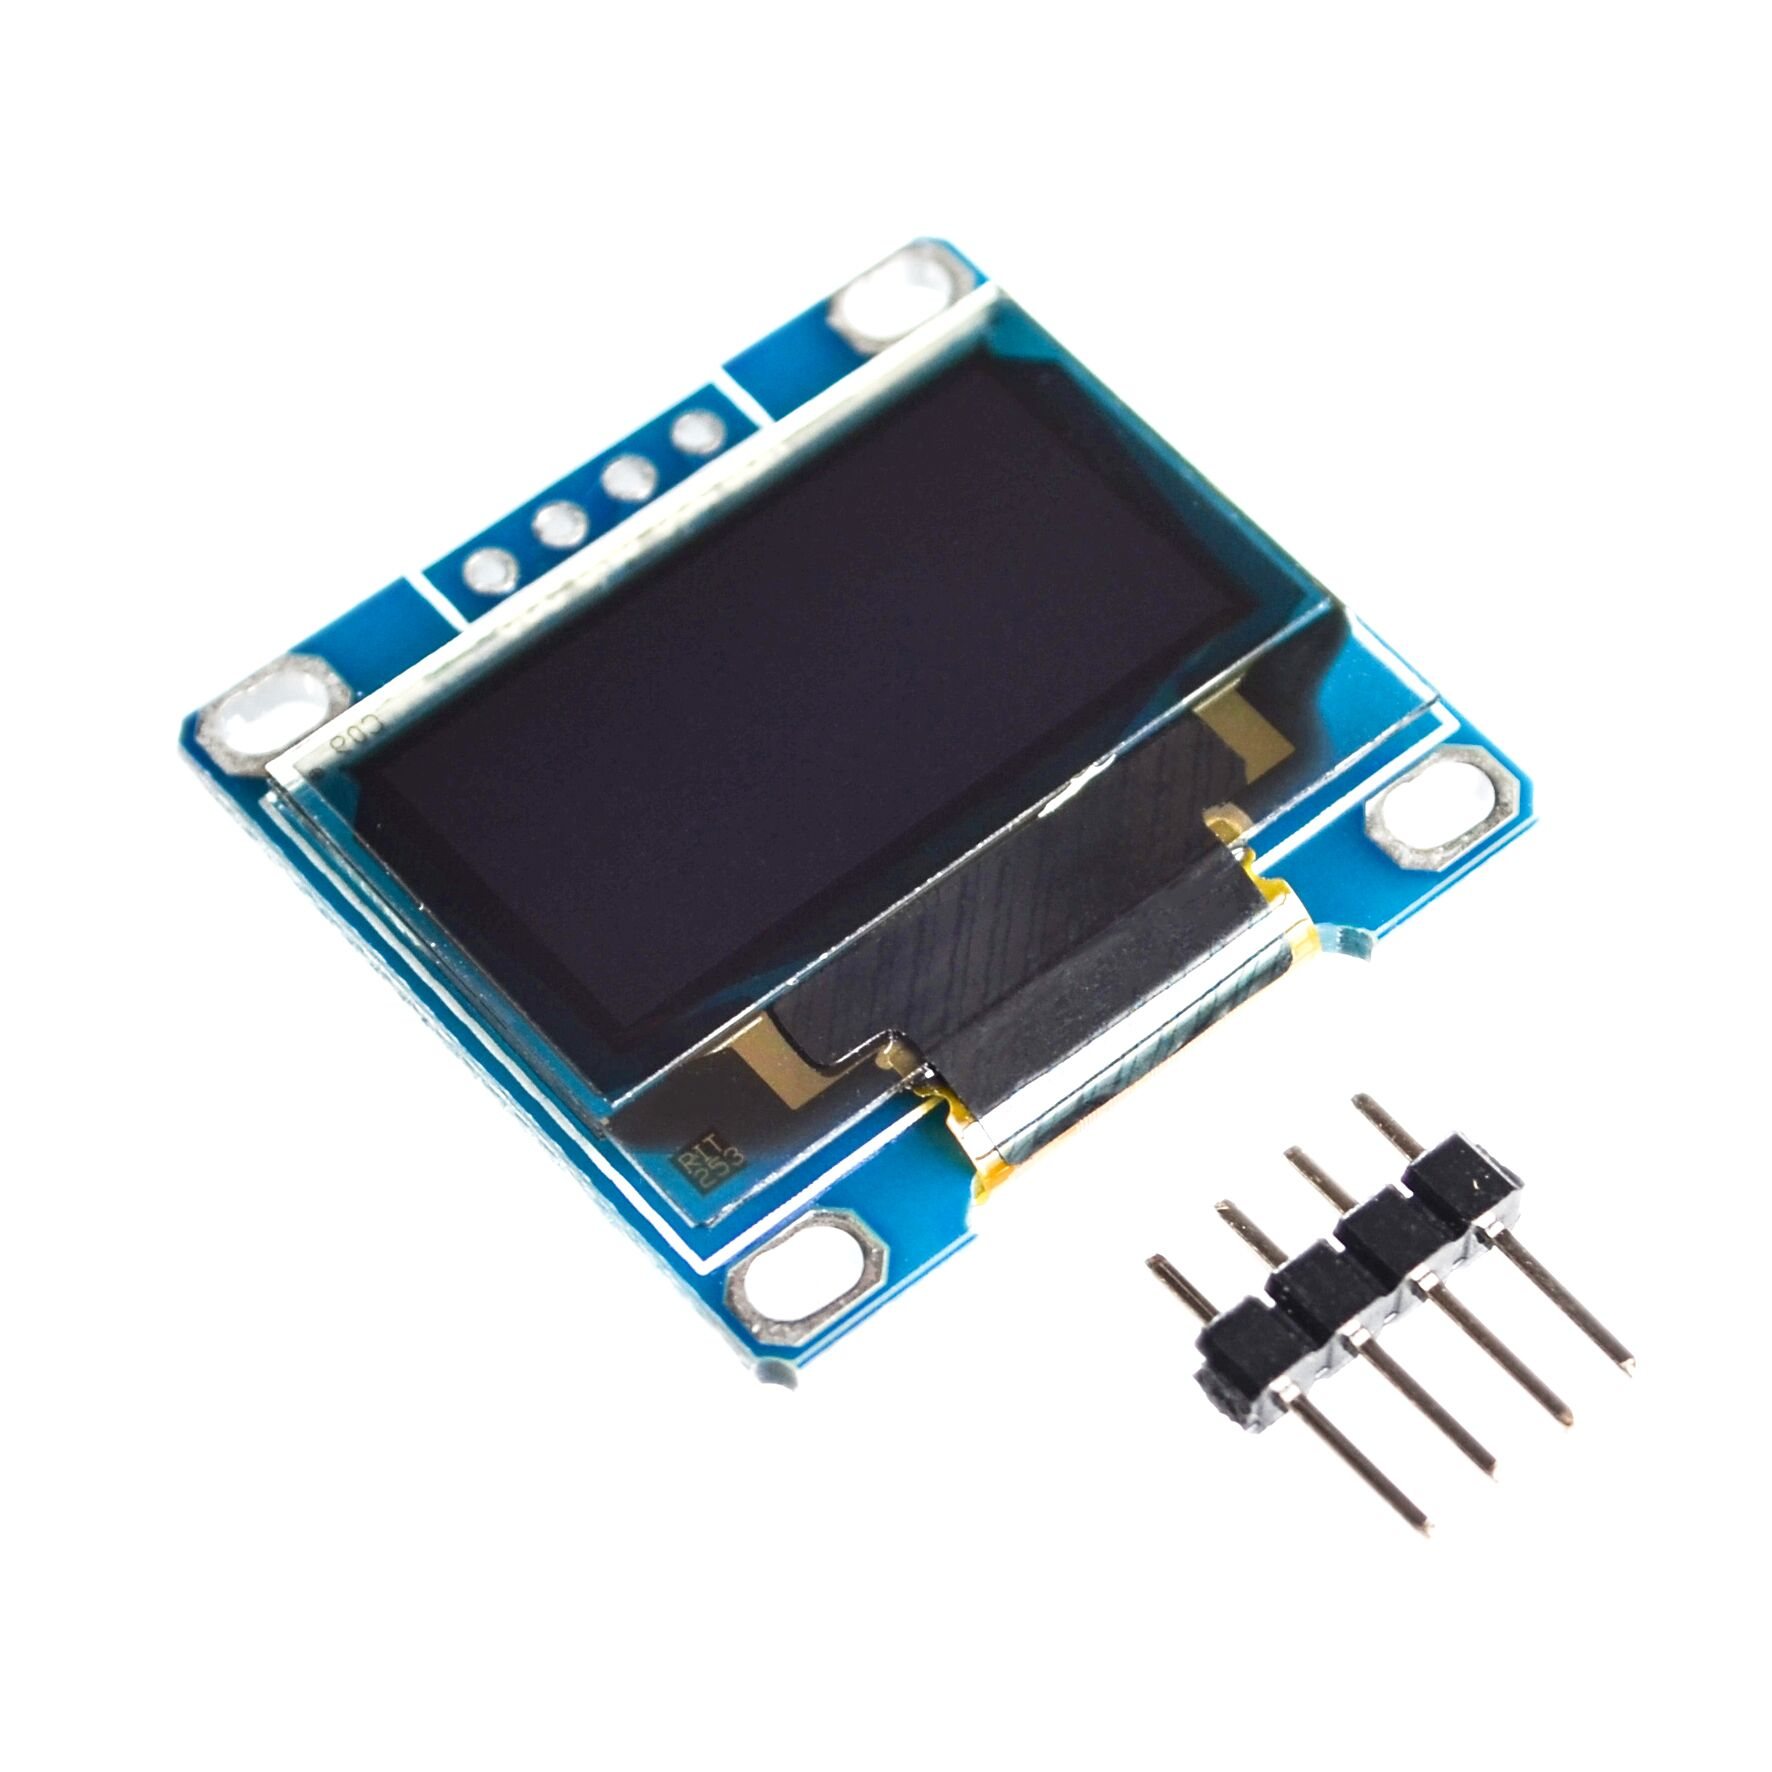 5pcs/lot White Blue color 128X64 OLED LCD LED Display Module For Arduino 0.96 I2C IIC Serial new original with CaseI